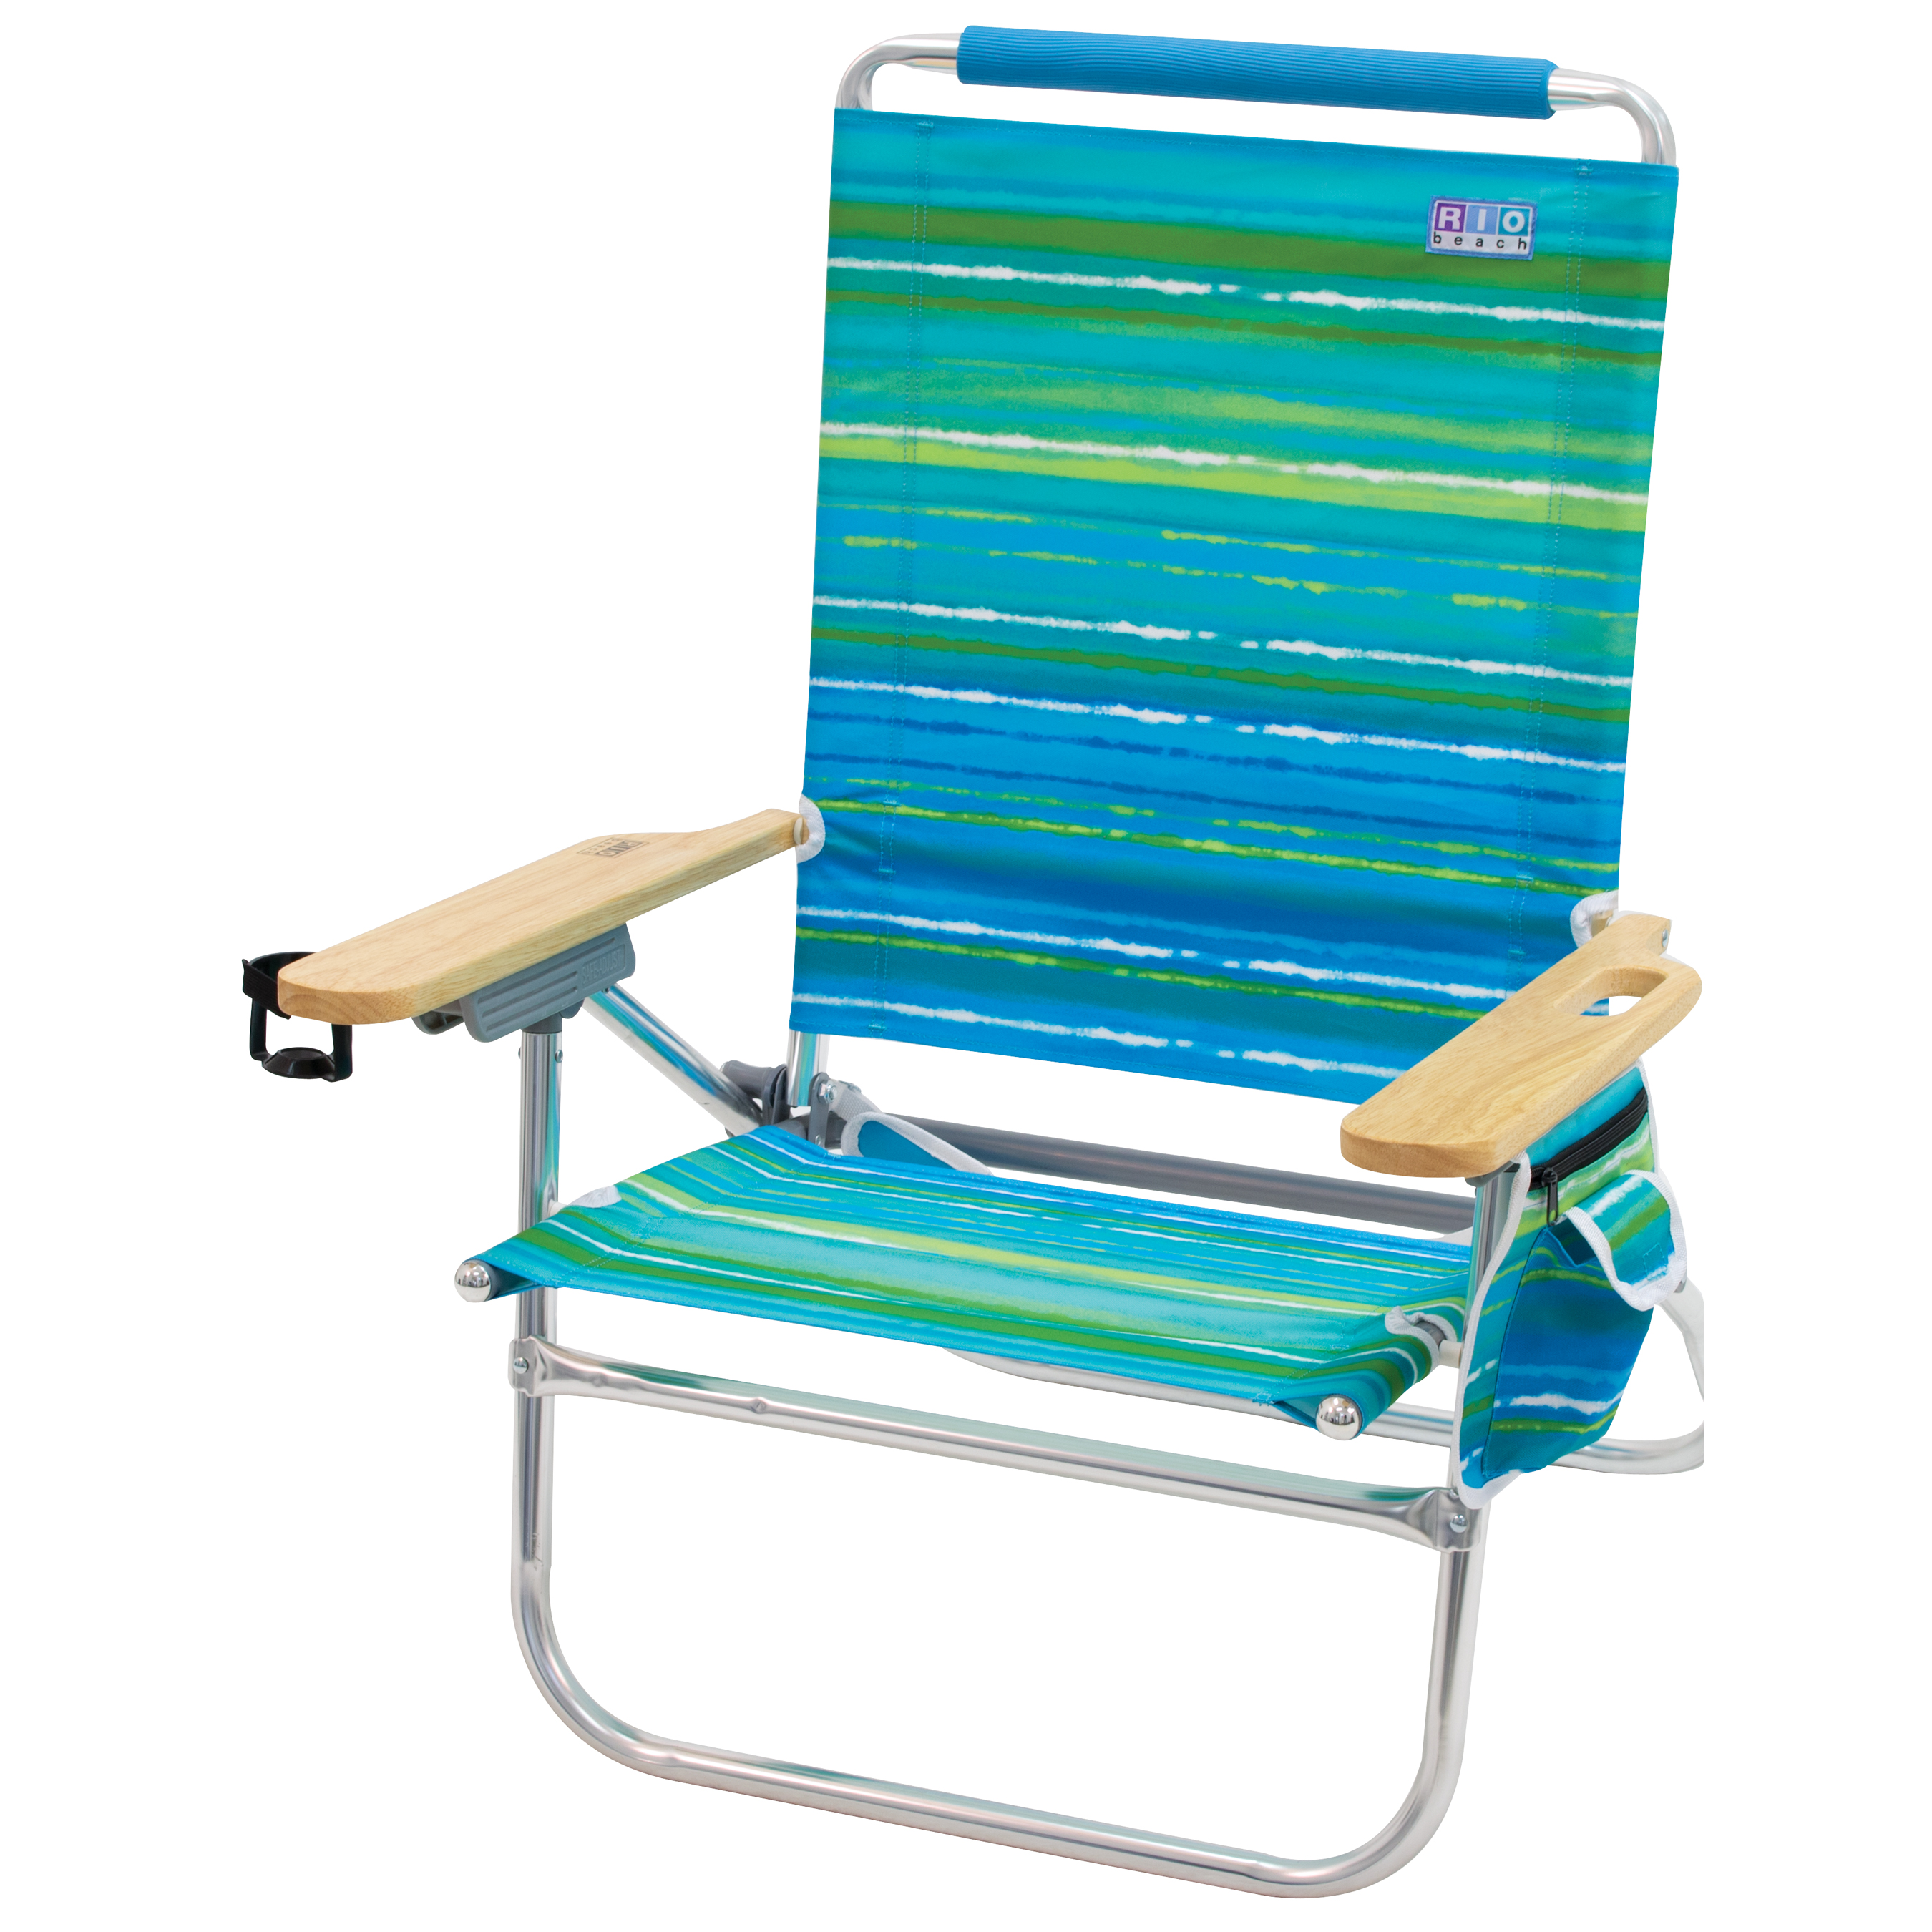 Fine Rio Easy In Easy Out 4 Position Beach Chair Walmart Home Interior And Landscaping Ferensignezvosmurscom